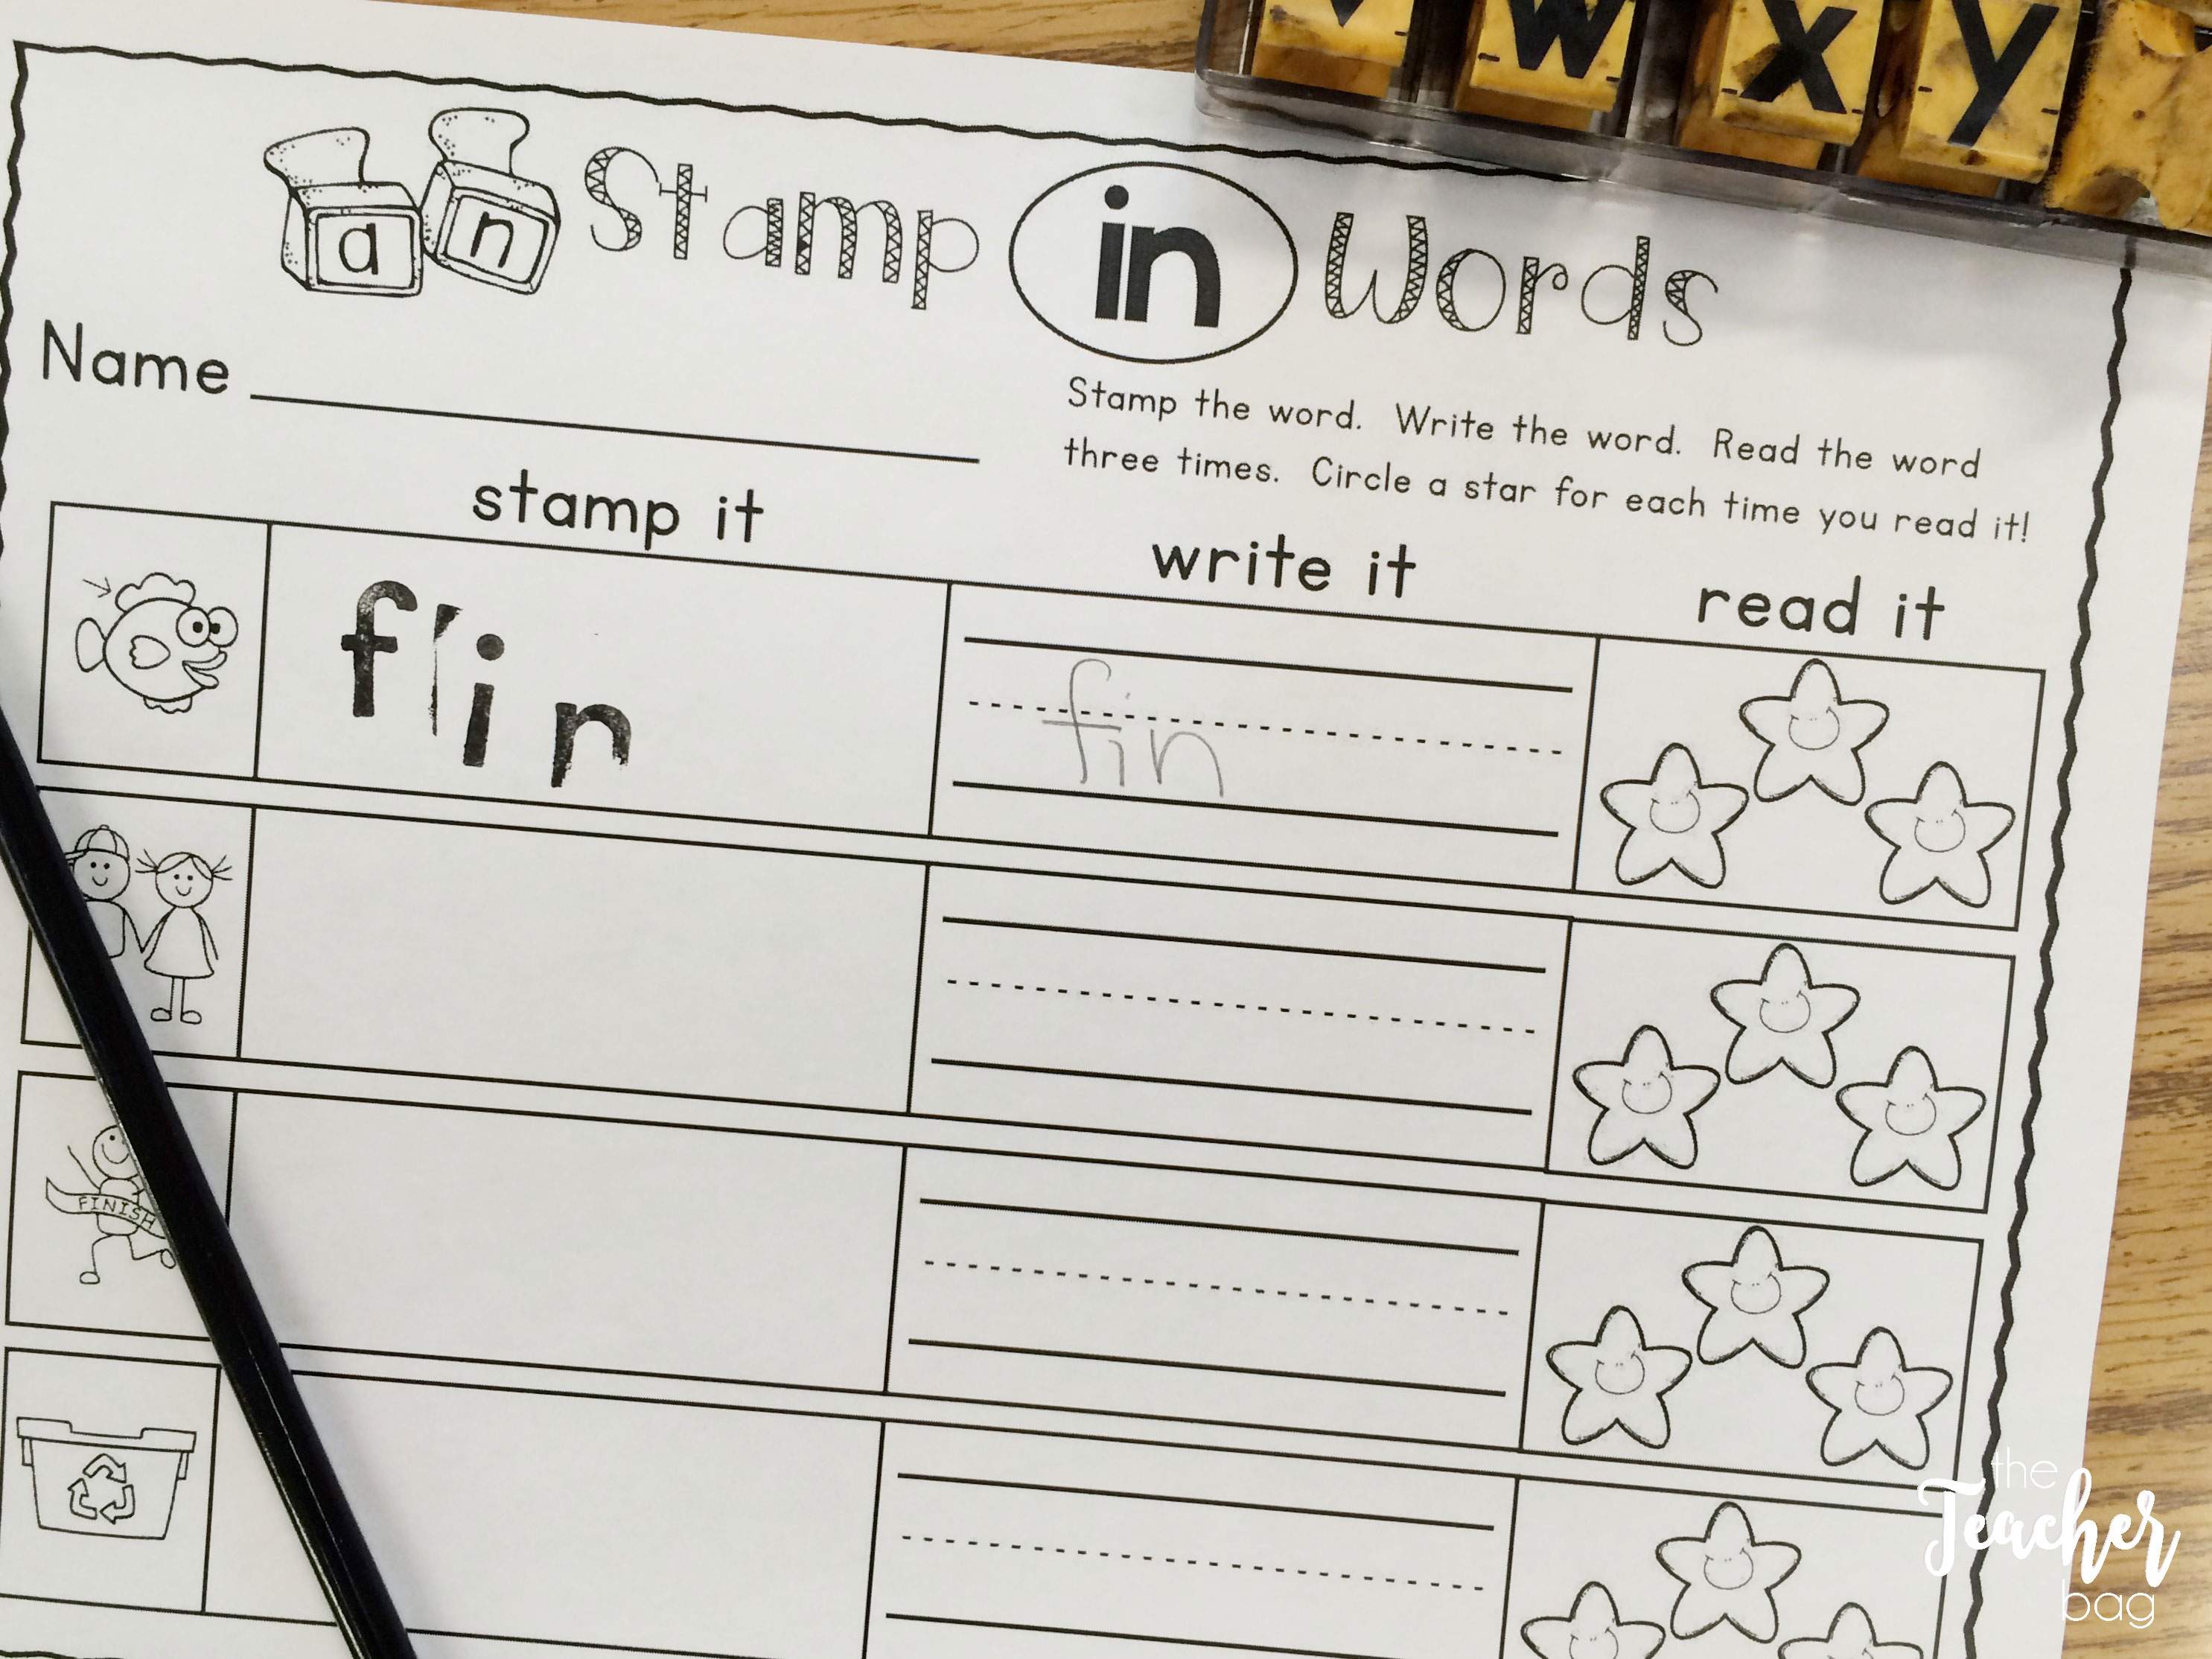 stamping out word family words